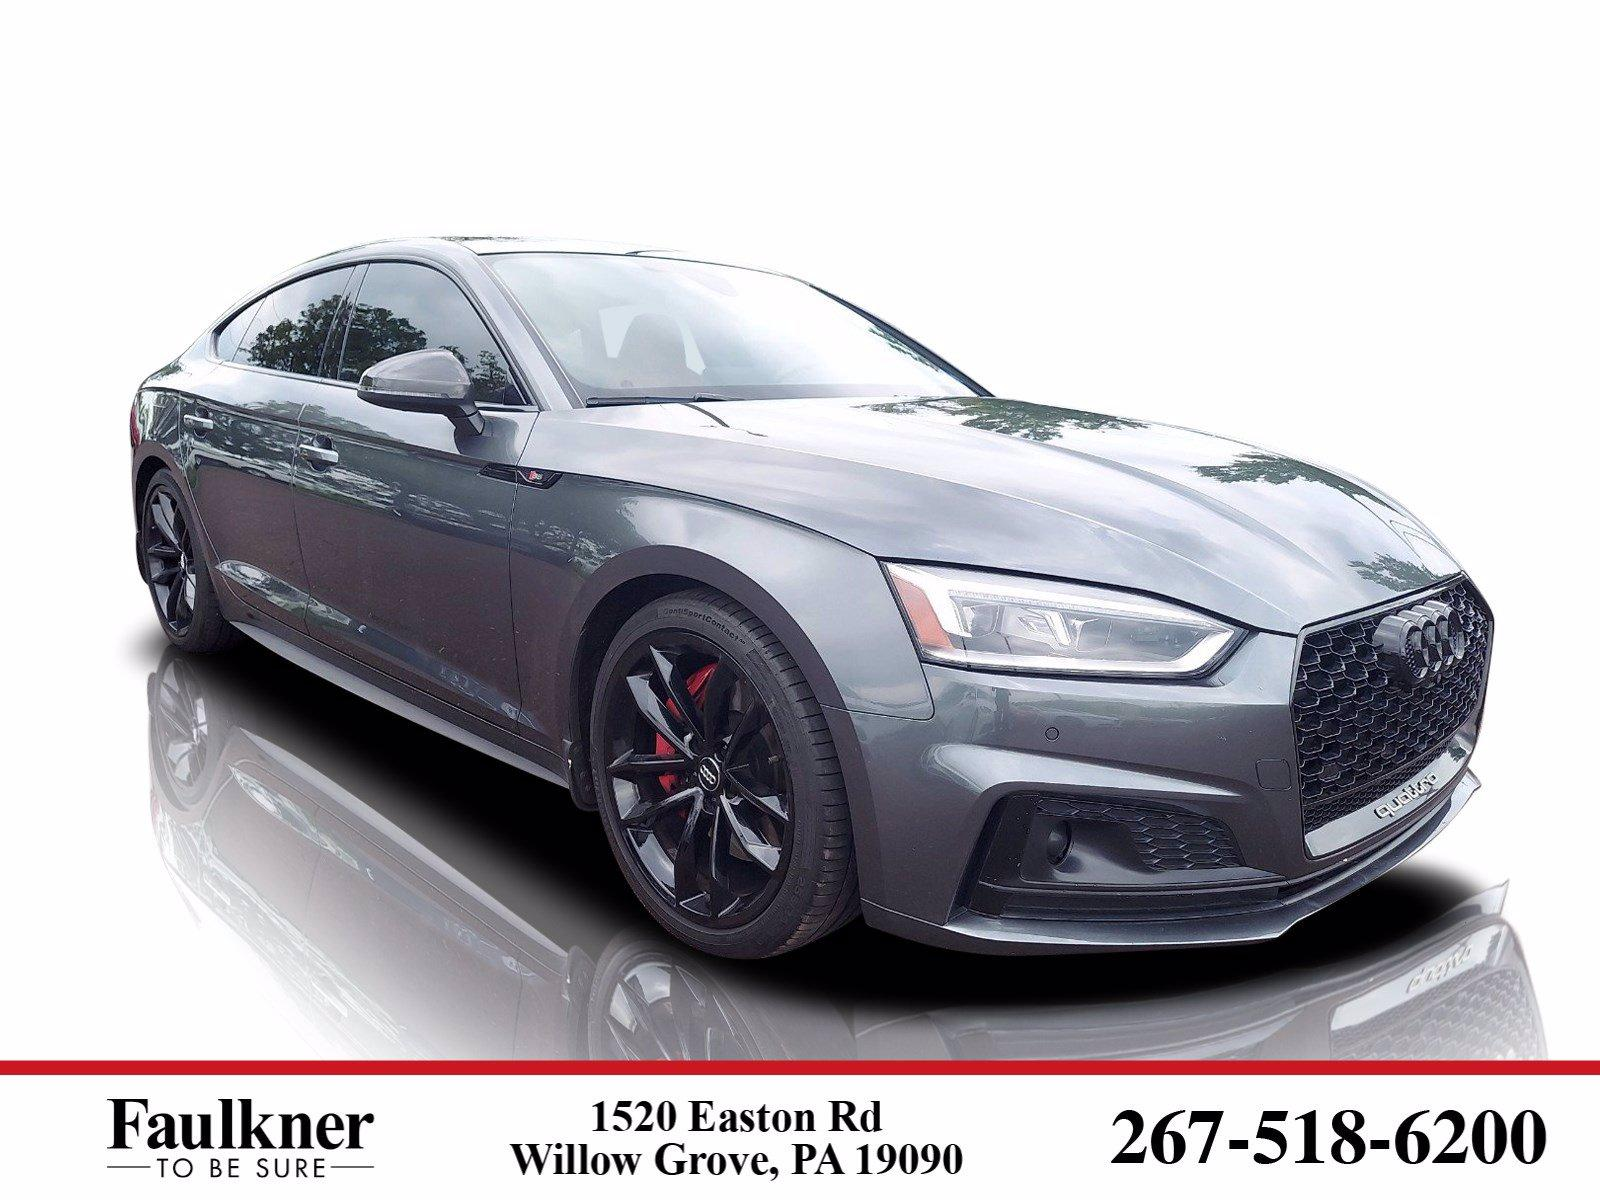 2018 Audi S5 Sportback Vehicle Photo in Willow Grove, PA 19090